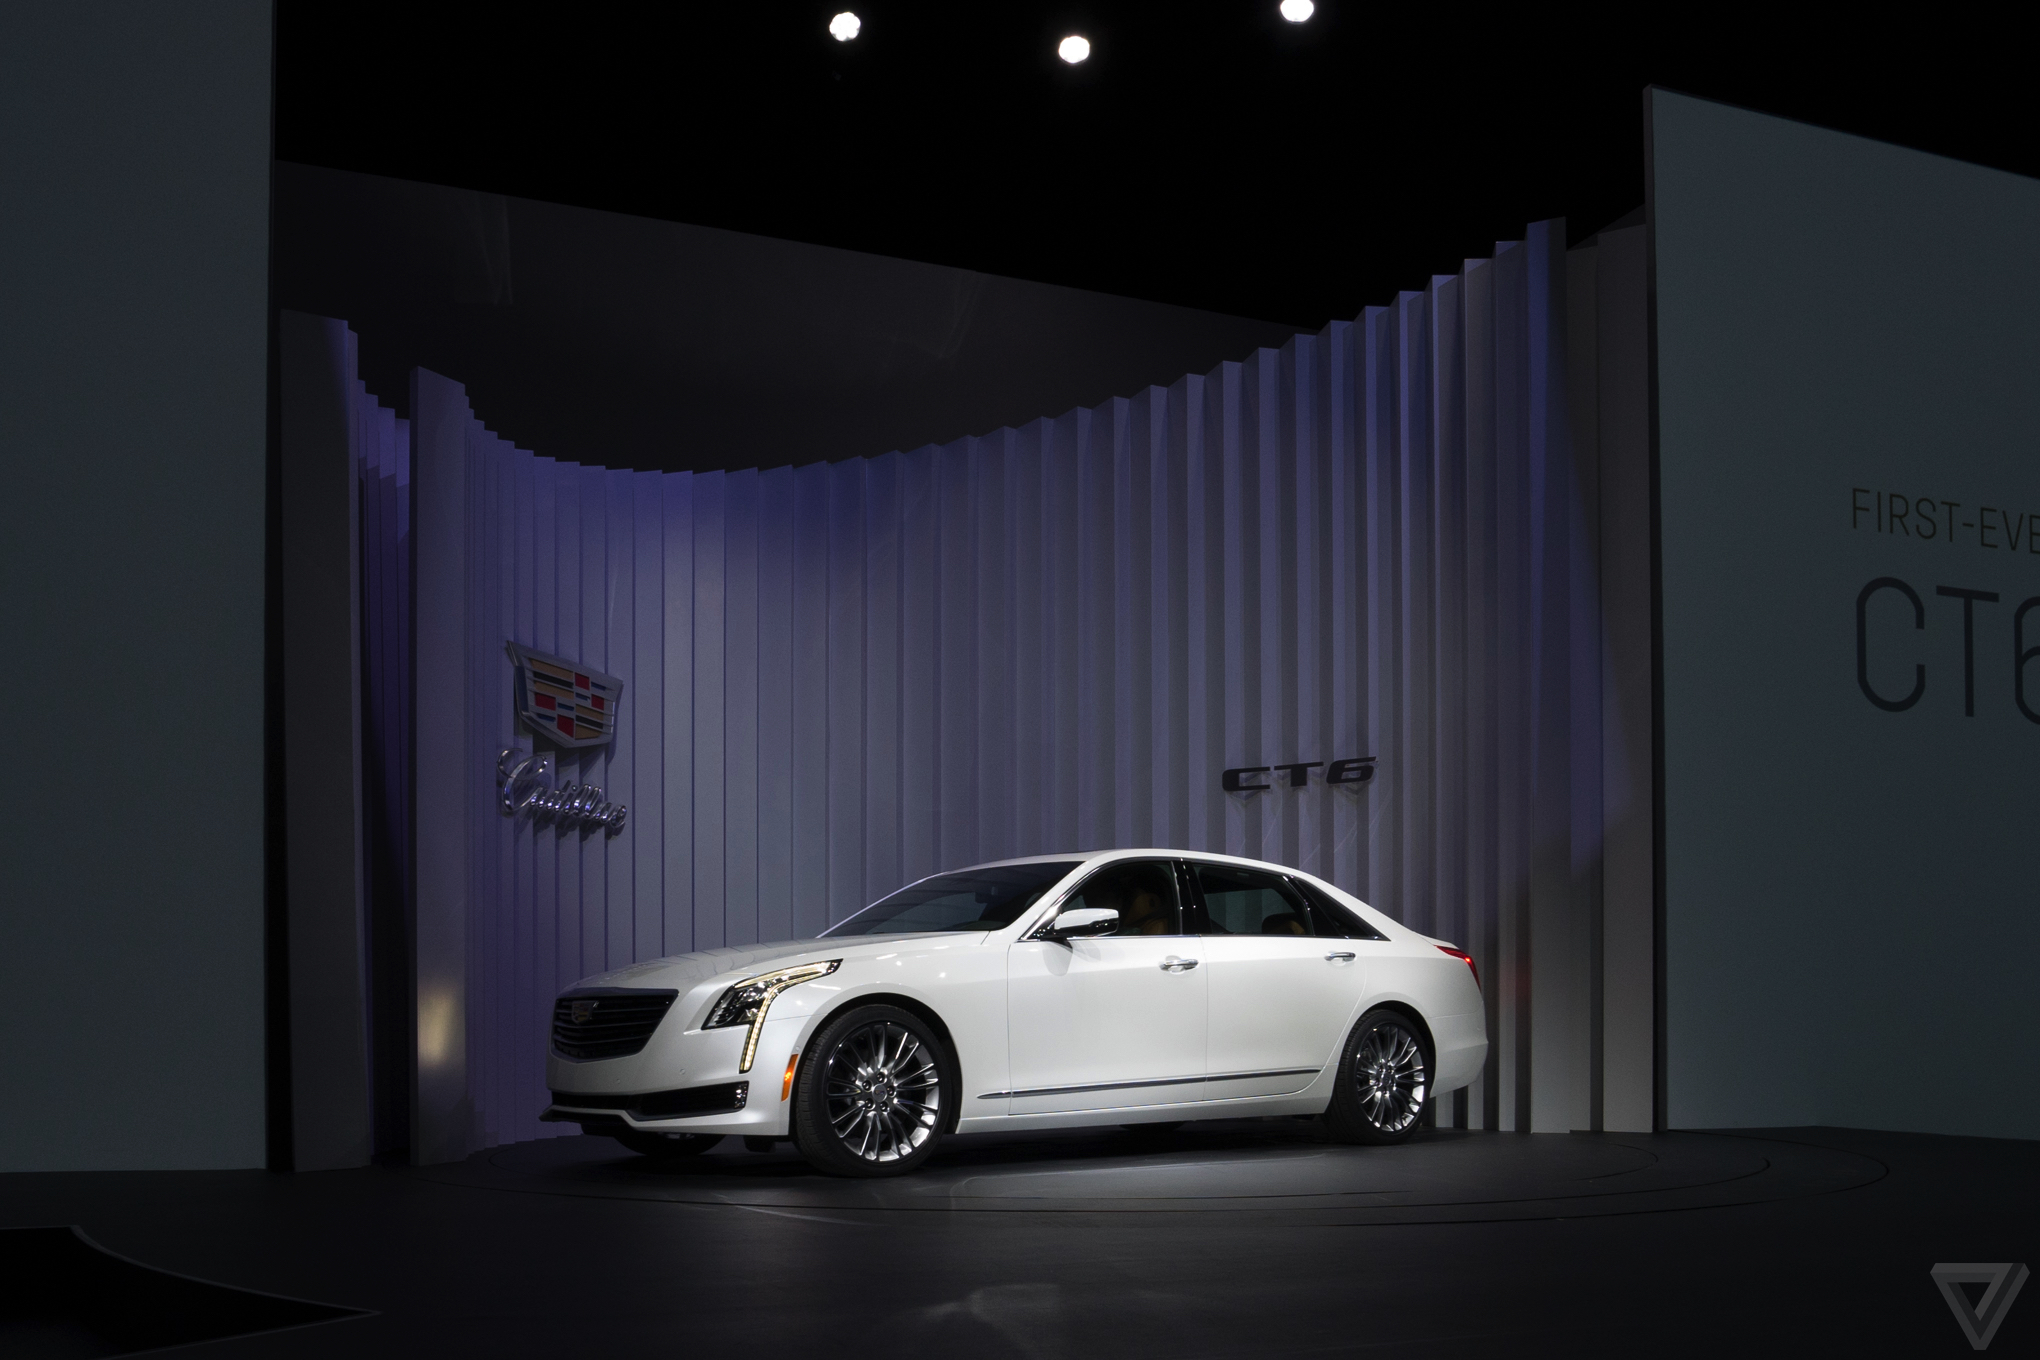 Cadillac to Introduce Super Cruise This Fall